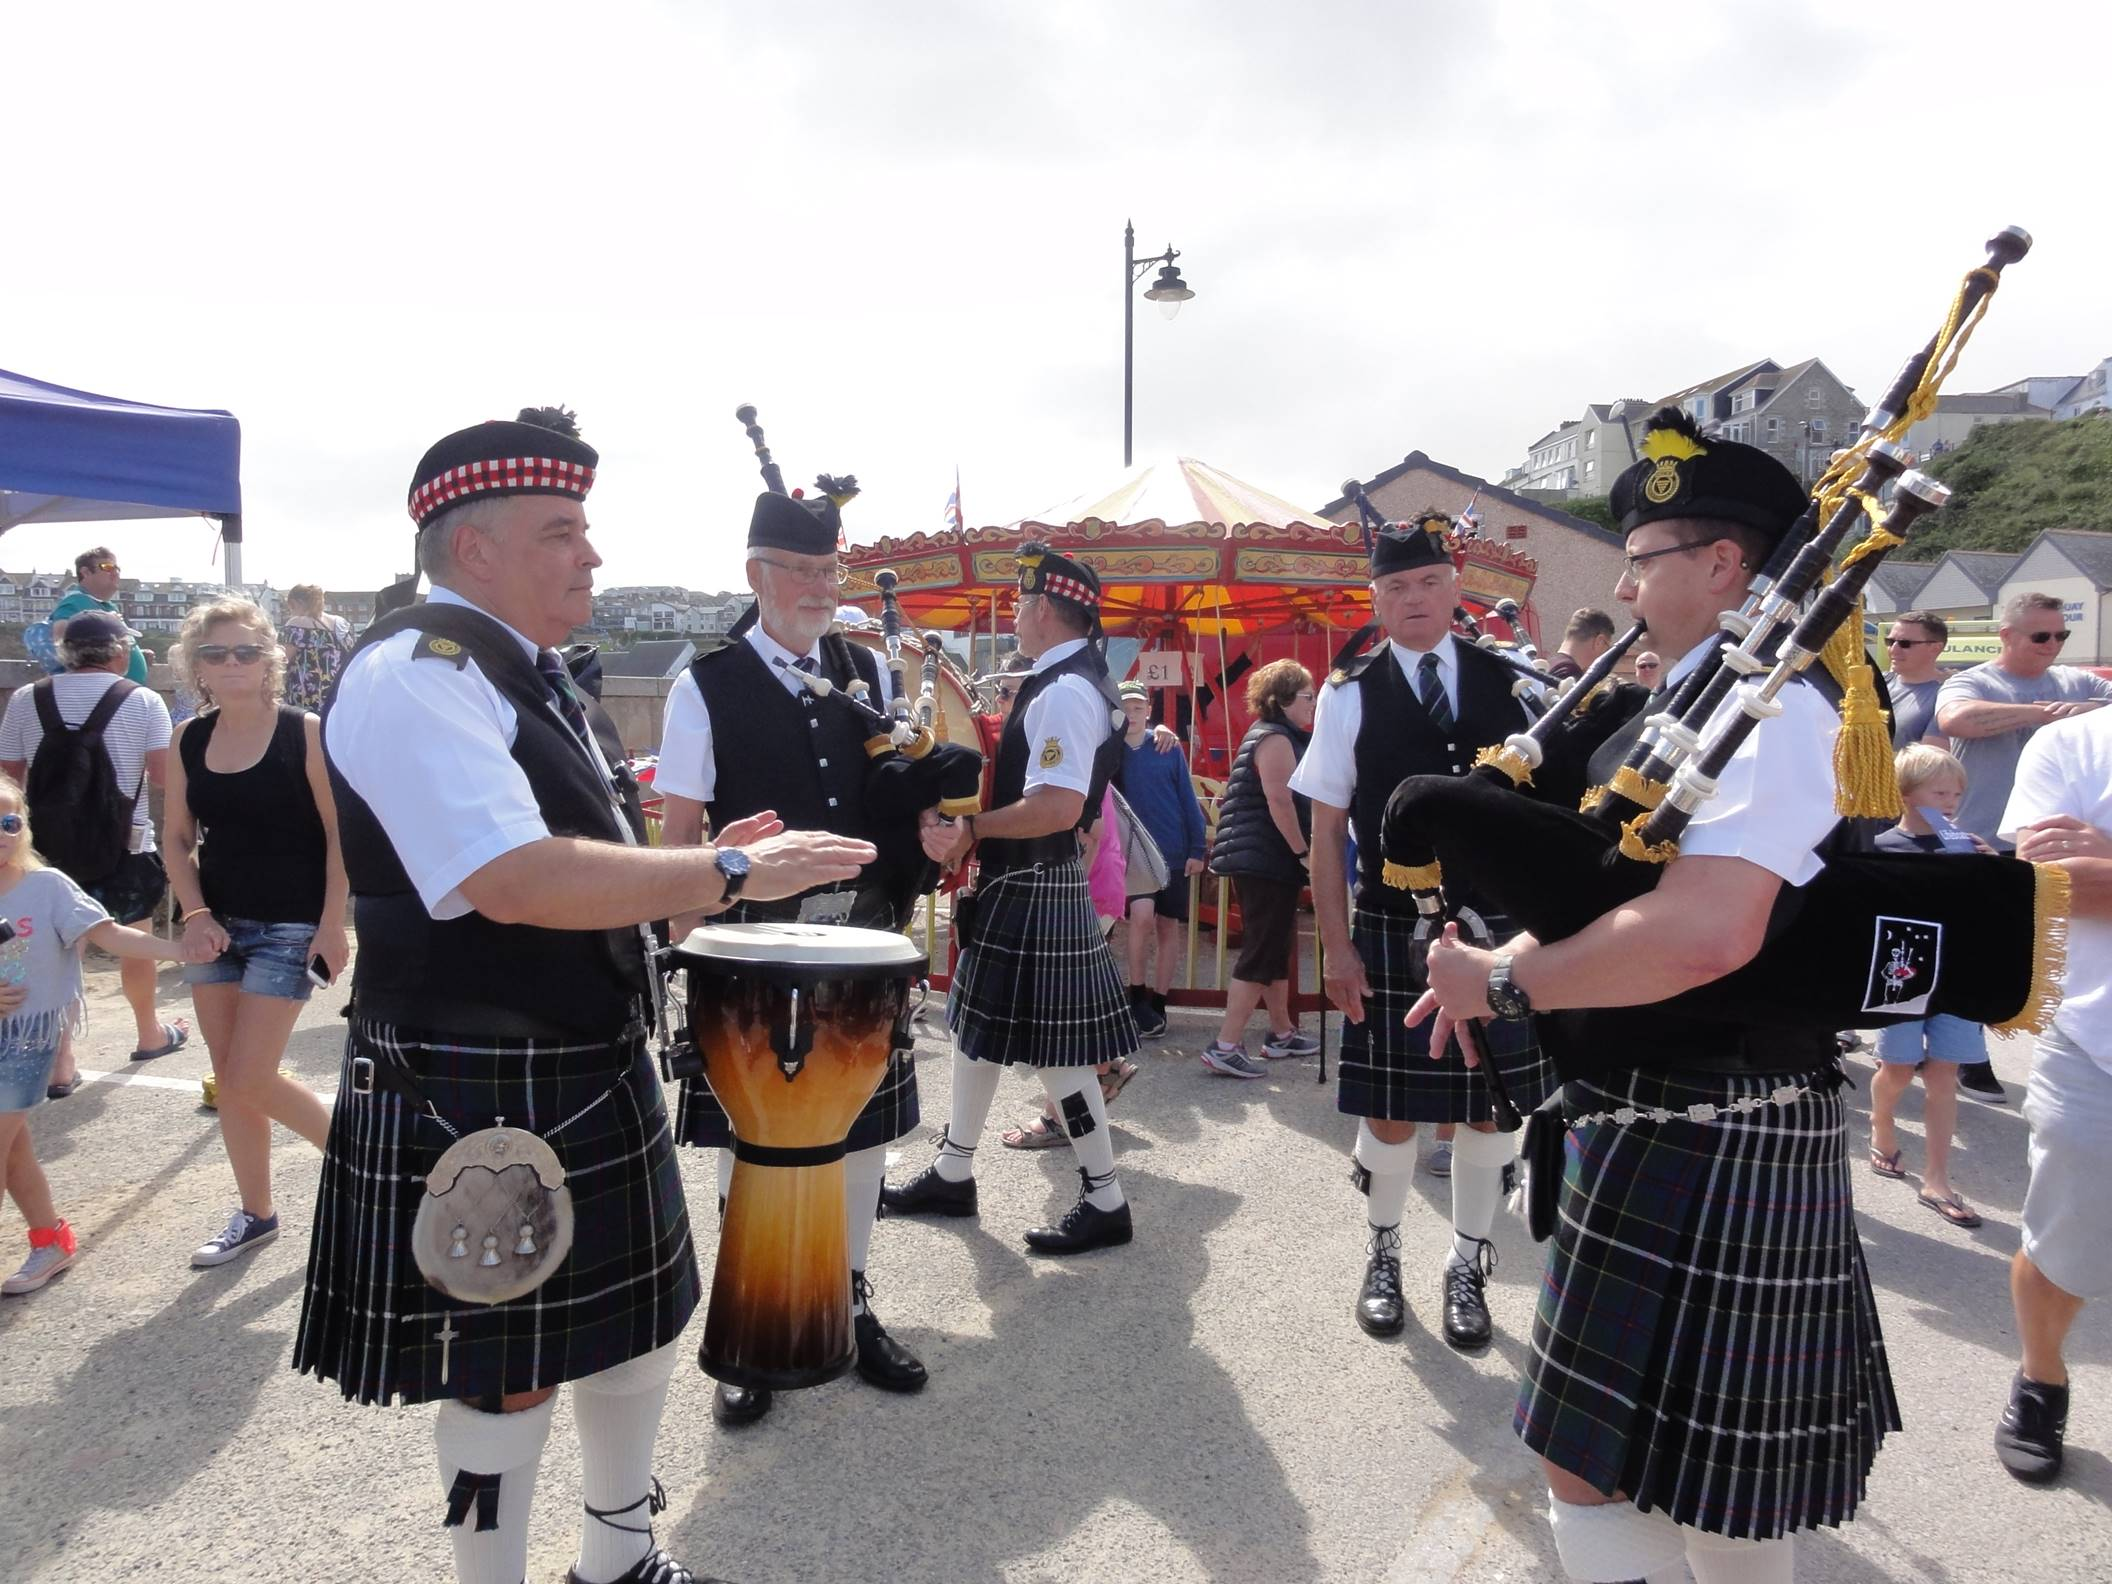 kernow pipes and drums at newquay lifeboat day 2019